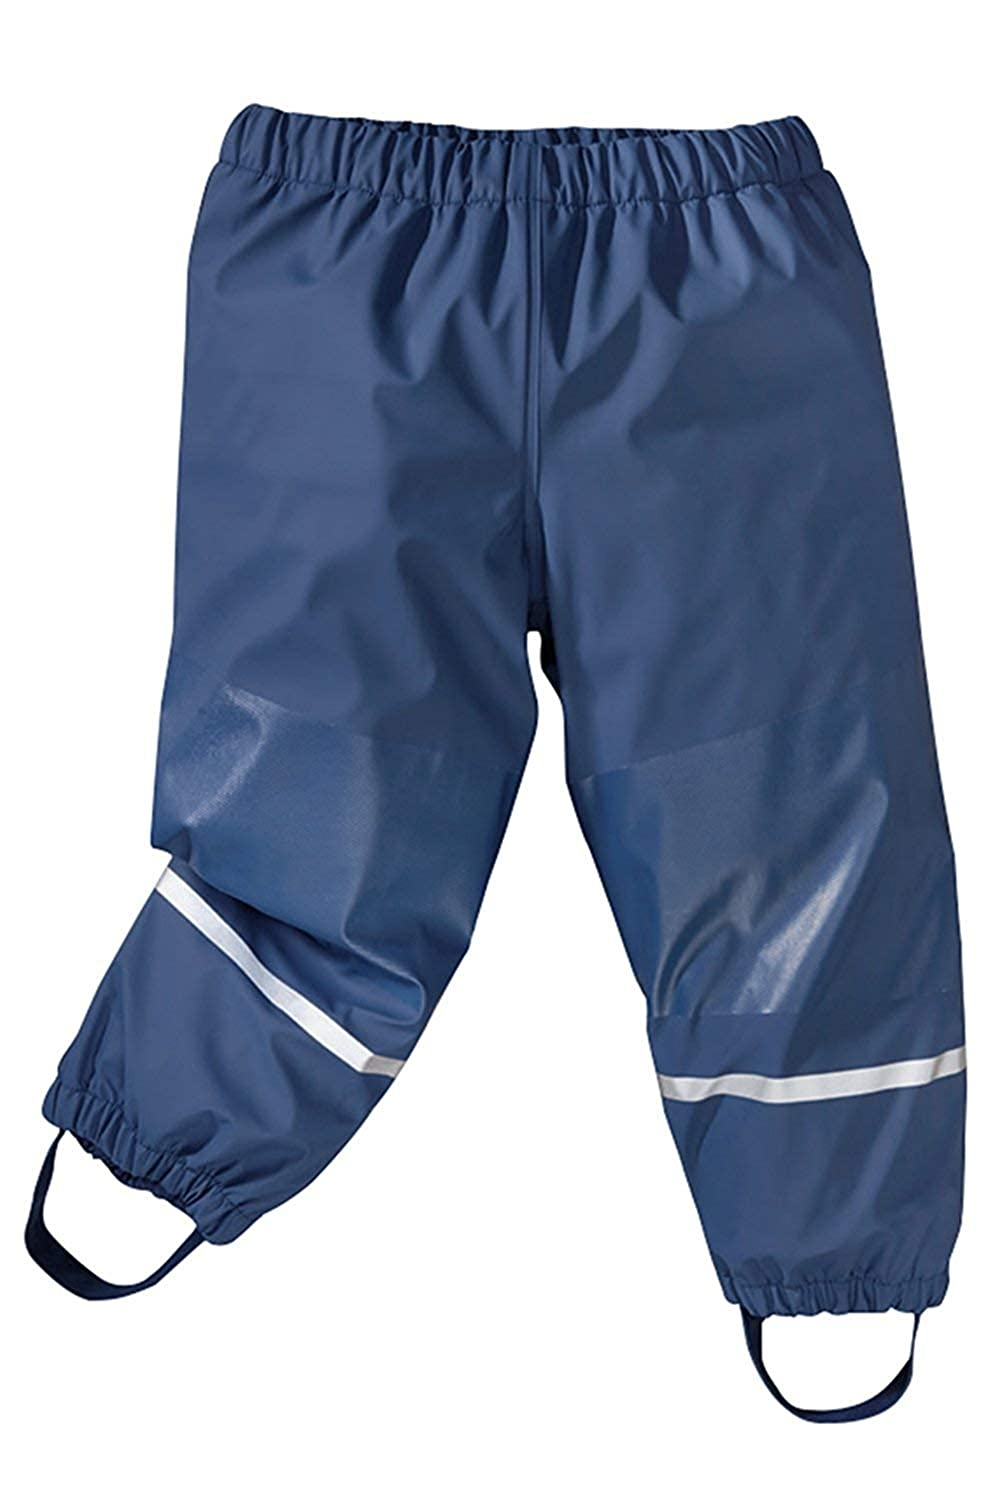 Playshoes Unisex Baby and Kids Rain Pants